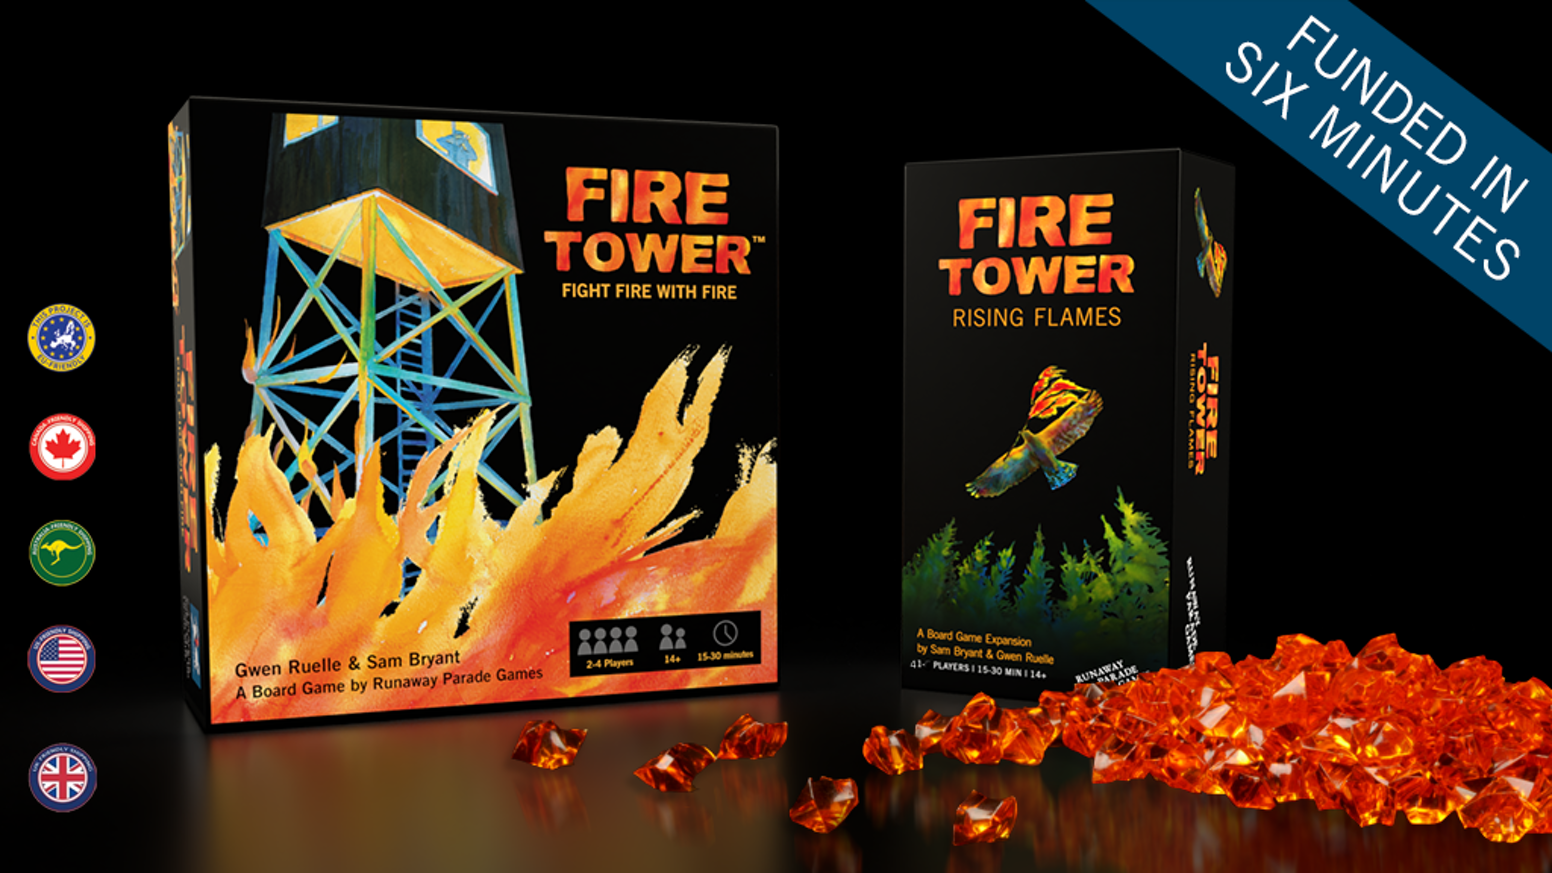 Fight fire with fire in this award-winning, fiercely competitive board game, now with legendary firehawks!